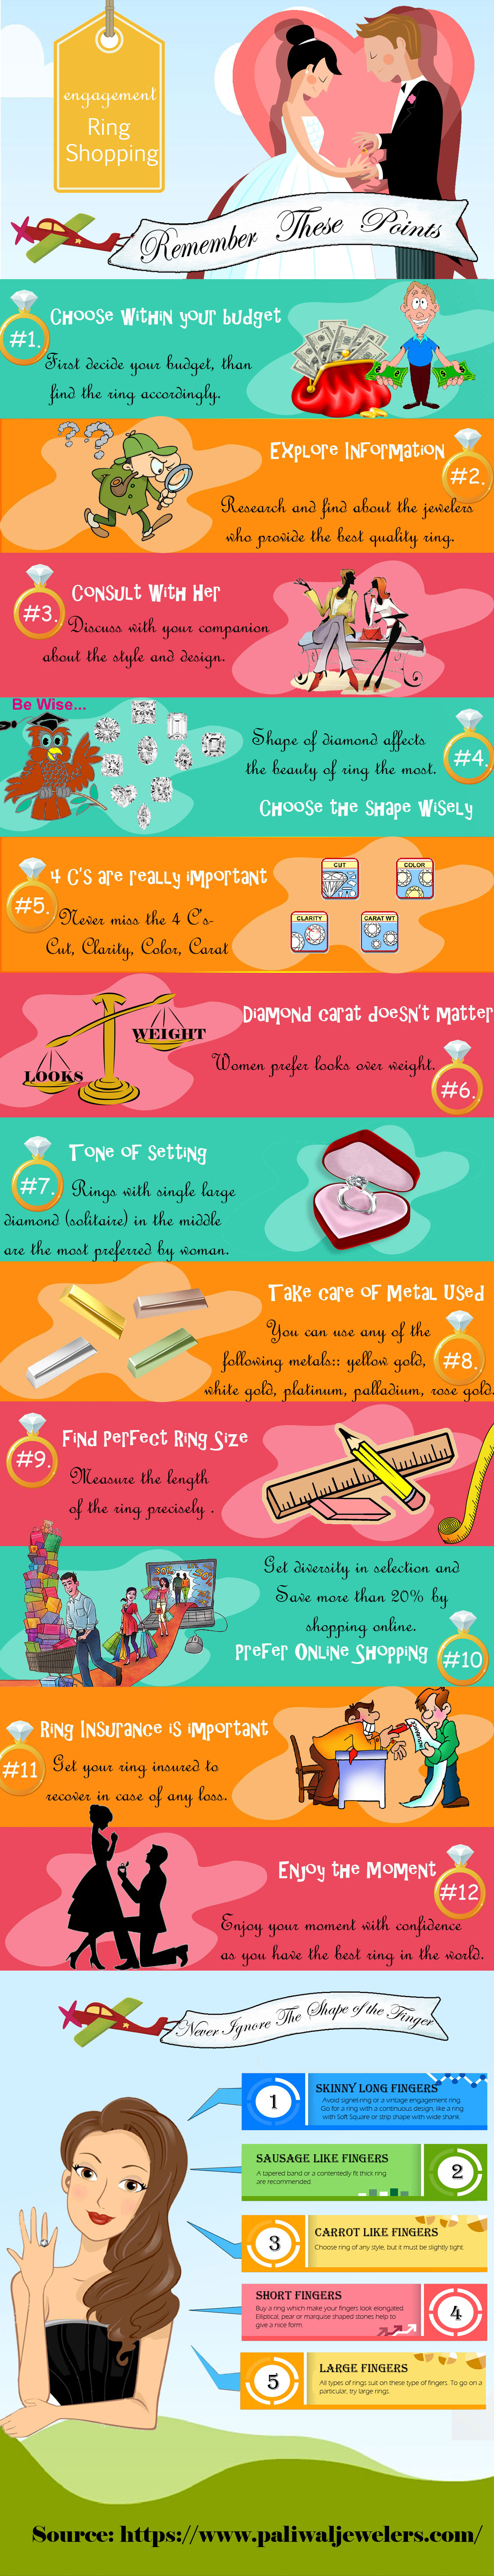 Tips to buy an engagement ring [infographic]